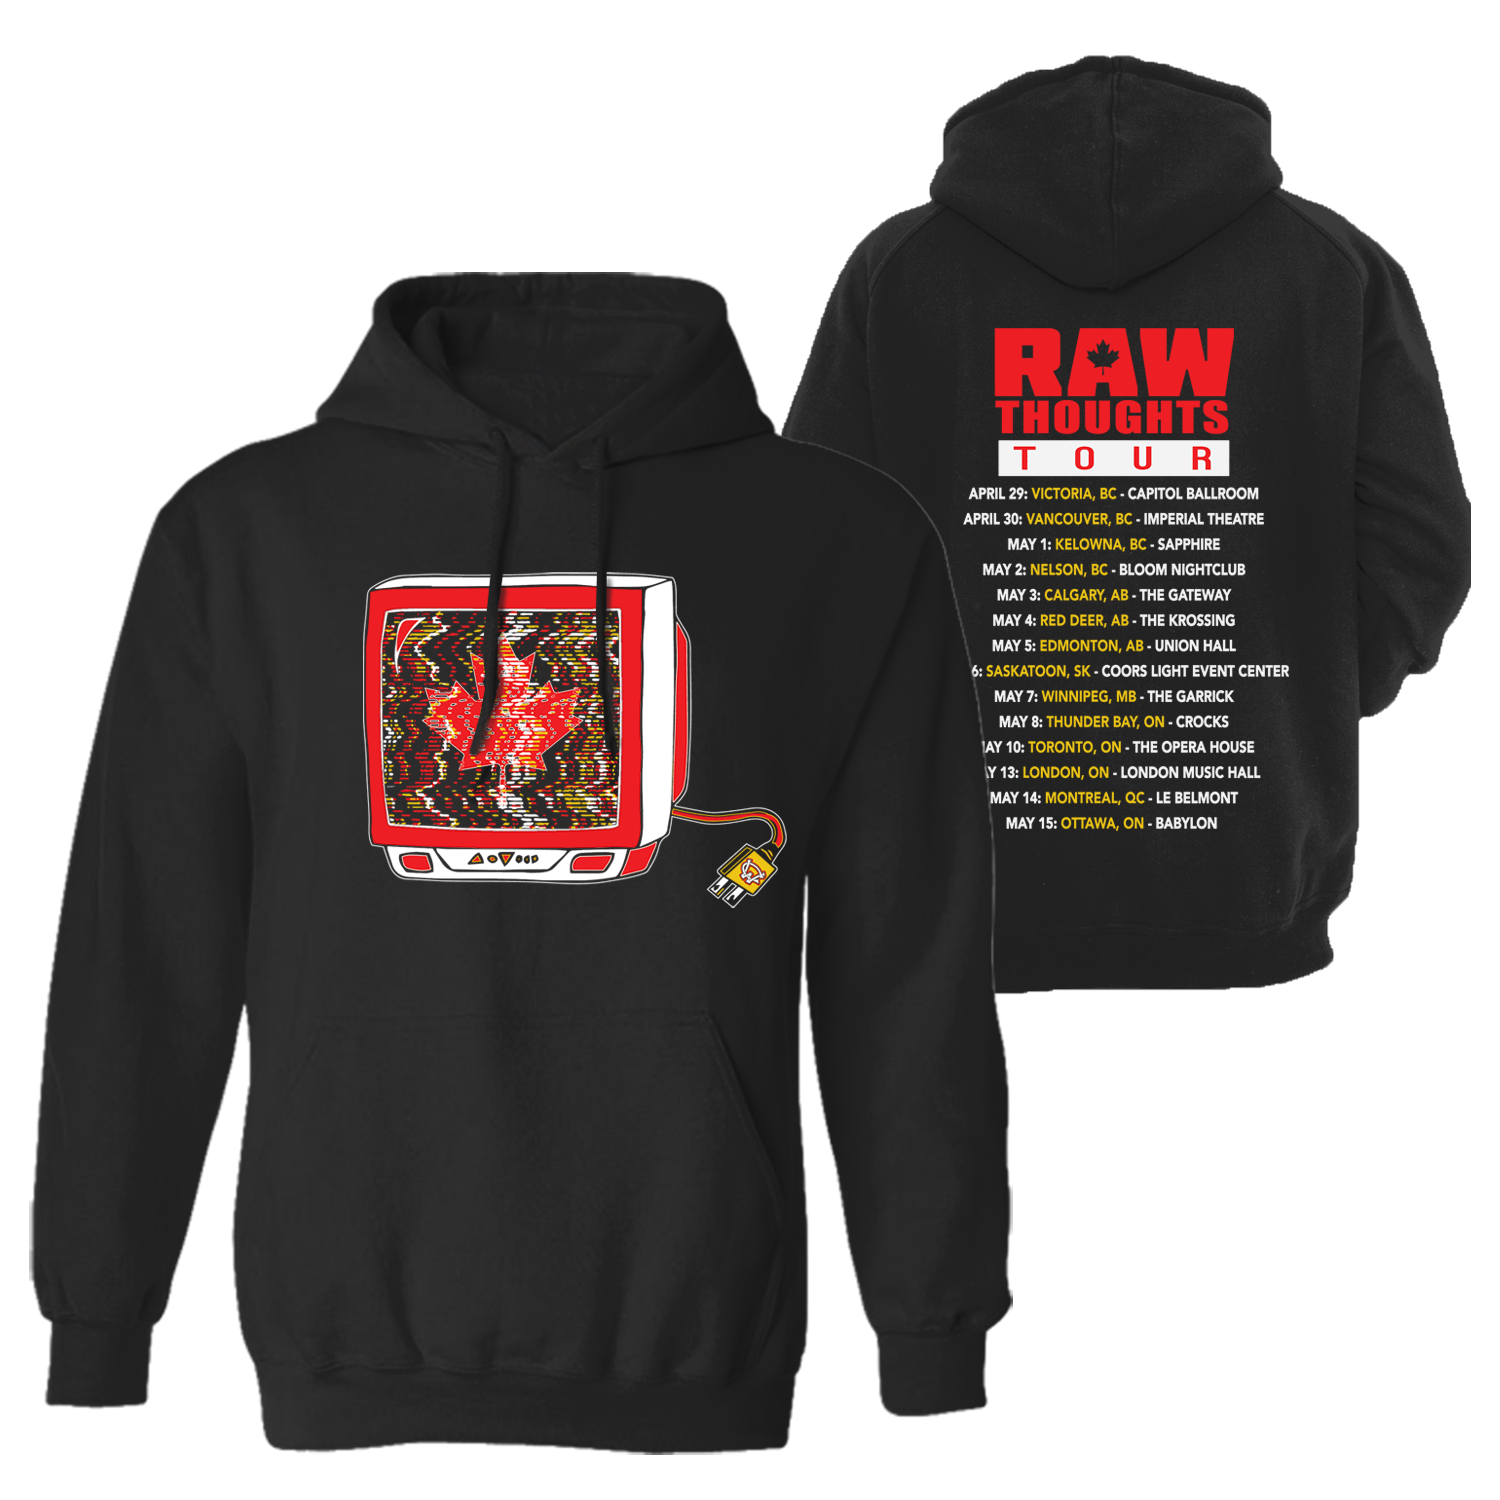 Raw Thoughts Tour Hoodie (Canada)